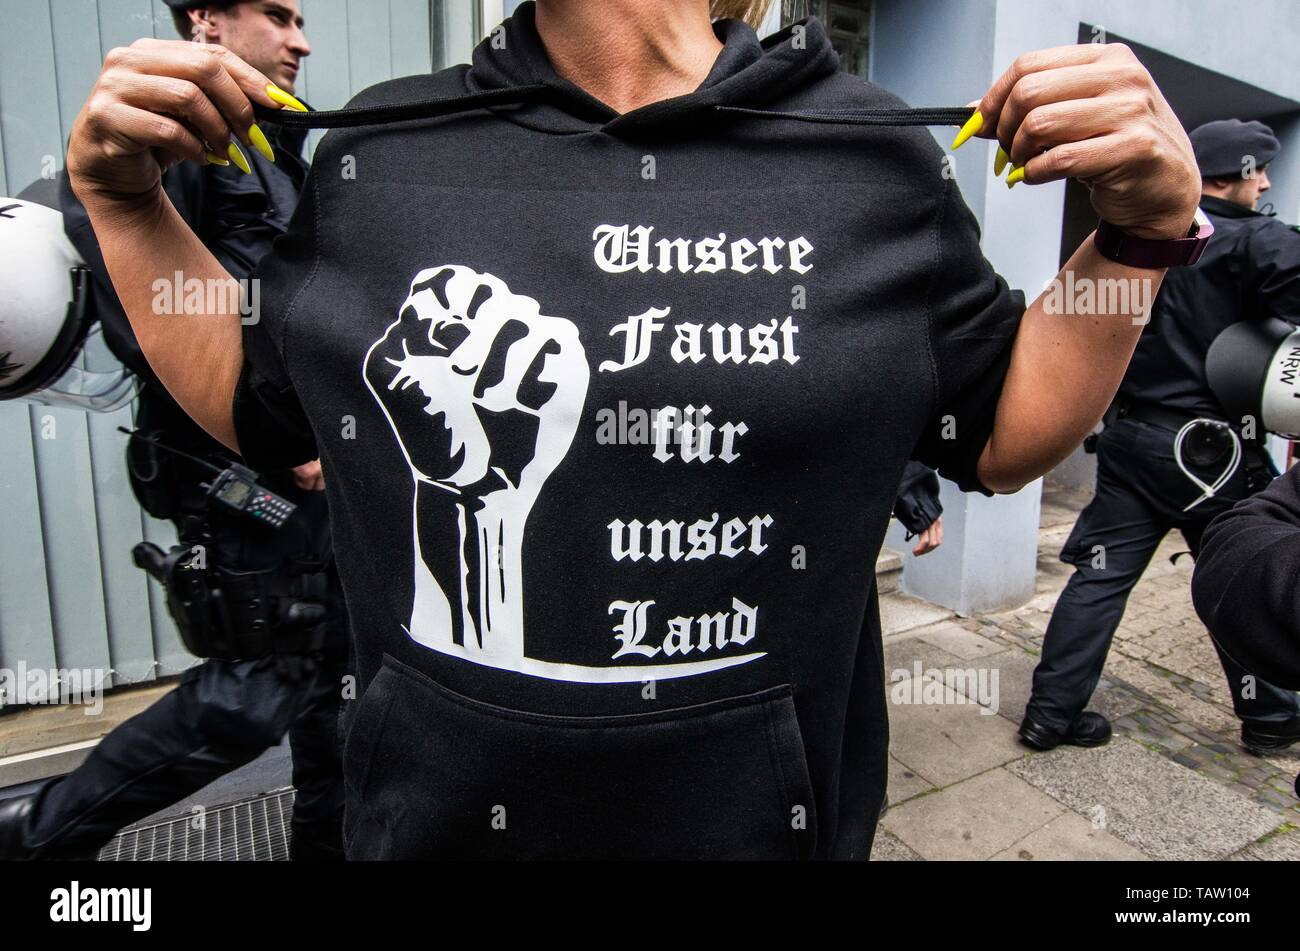 Dortmund, Nordrhein Westfalen, Germany. 25th May, 2019. ''Our fists for our land'' worn by a neonazi in Dortmund, Germany. Prior to the European Elections, the neonazi party Die Rechte (The Right) organized a rally in the German city of Dortmund to promote their candidate, the incarcerated Holocaust denier Ursula Haverbeck. The demonstration and march were organized by prominent local political figure and neonazi activist Michael Brueck (Michael Brück) who enlisted the help of not only German neonazis, but also assistance from Russian, Bulgarian, Hungarian, and Dutch groups with the final t Stock Photo